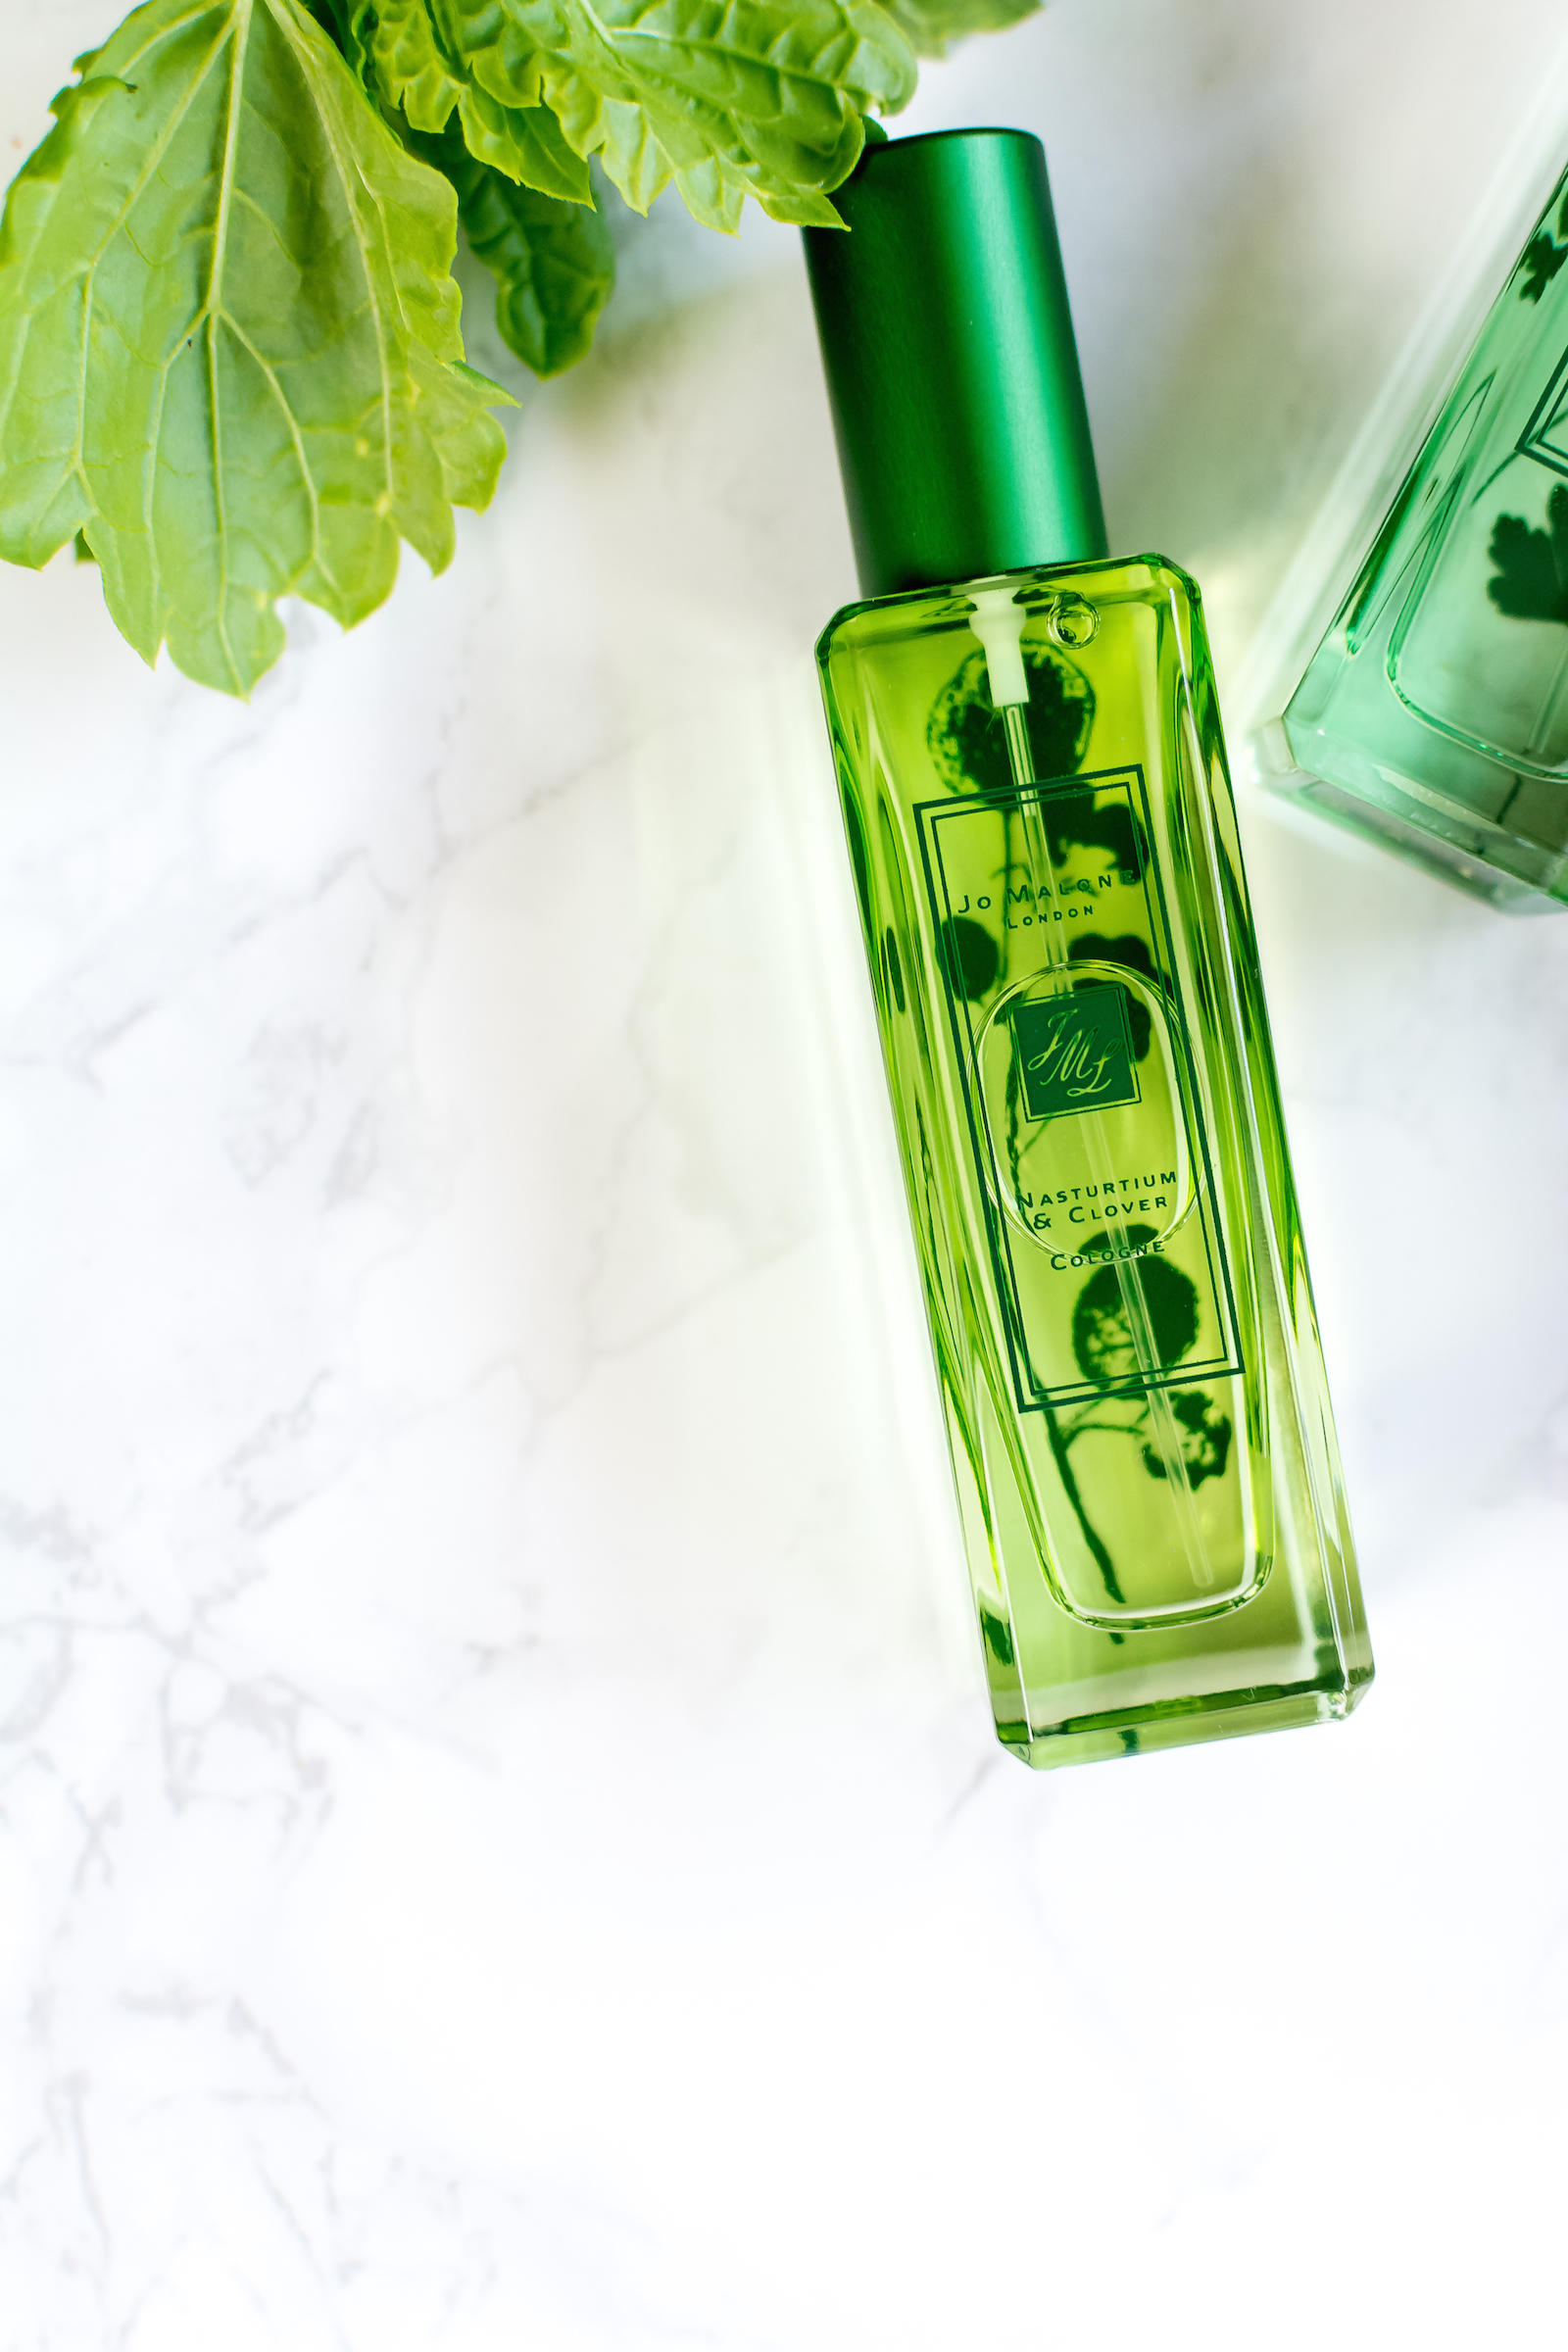 Jo Malone London Herb Garden Limited Edition Cologne